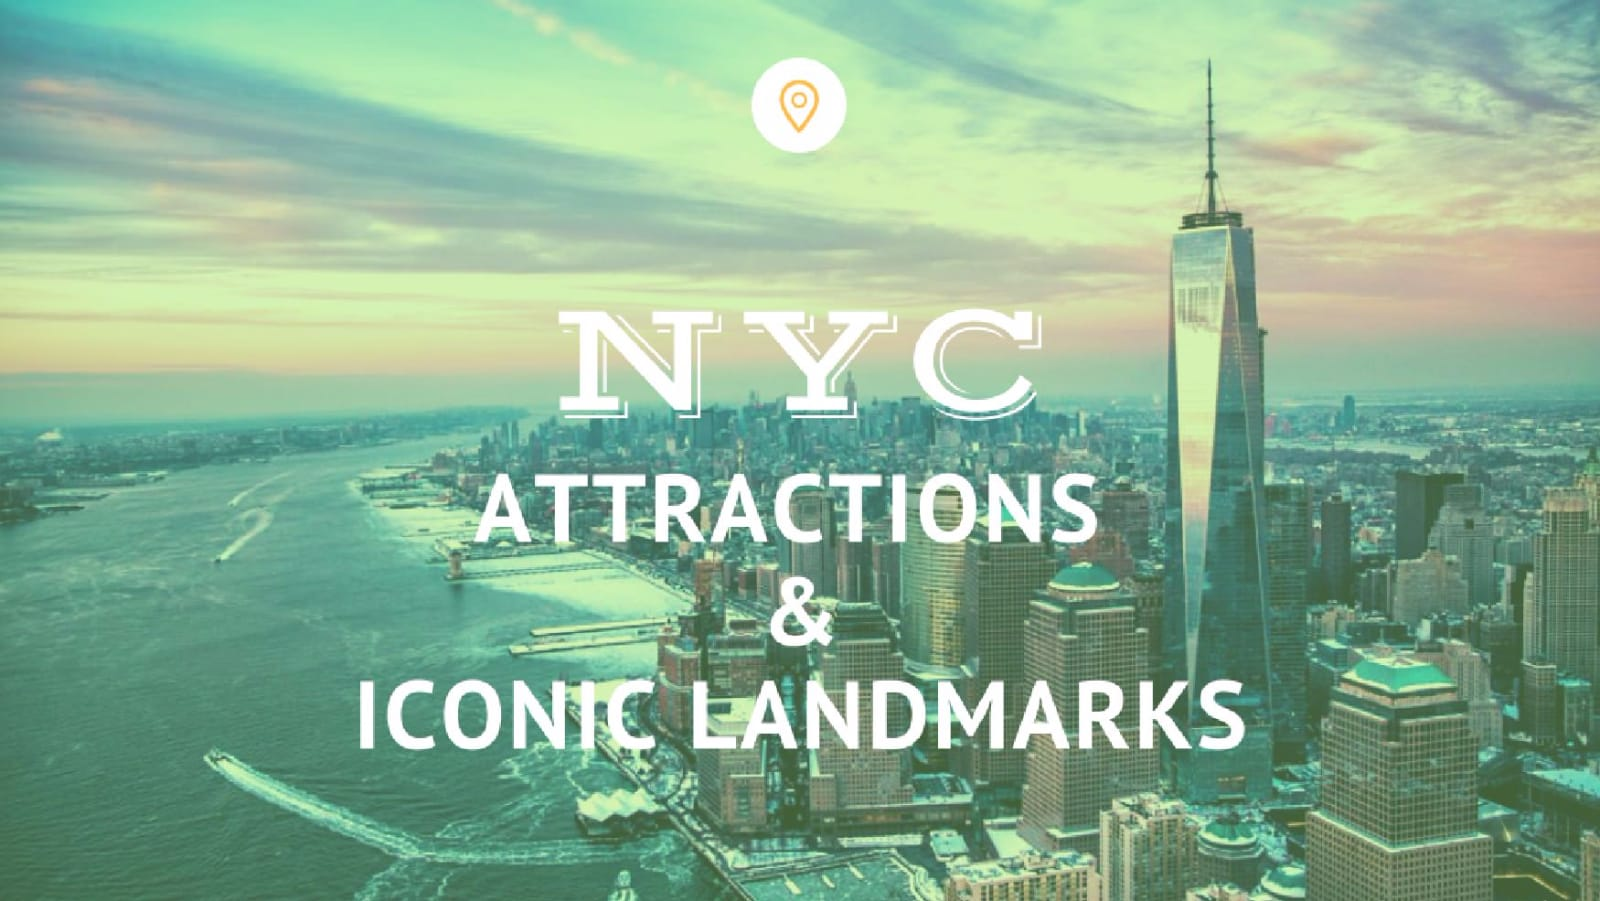 Nyc attractions iconic landmarks you must visit for Must see nyc attractions